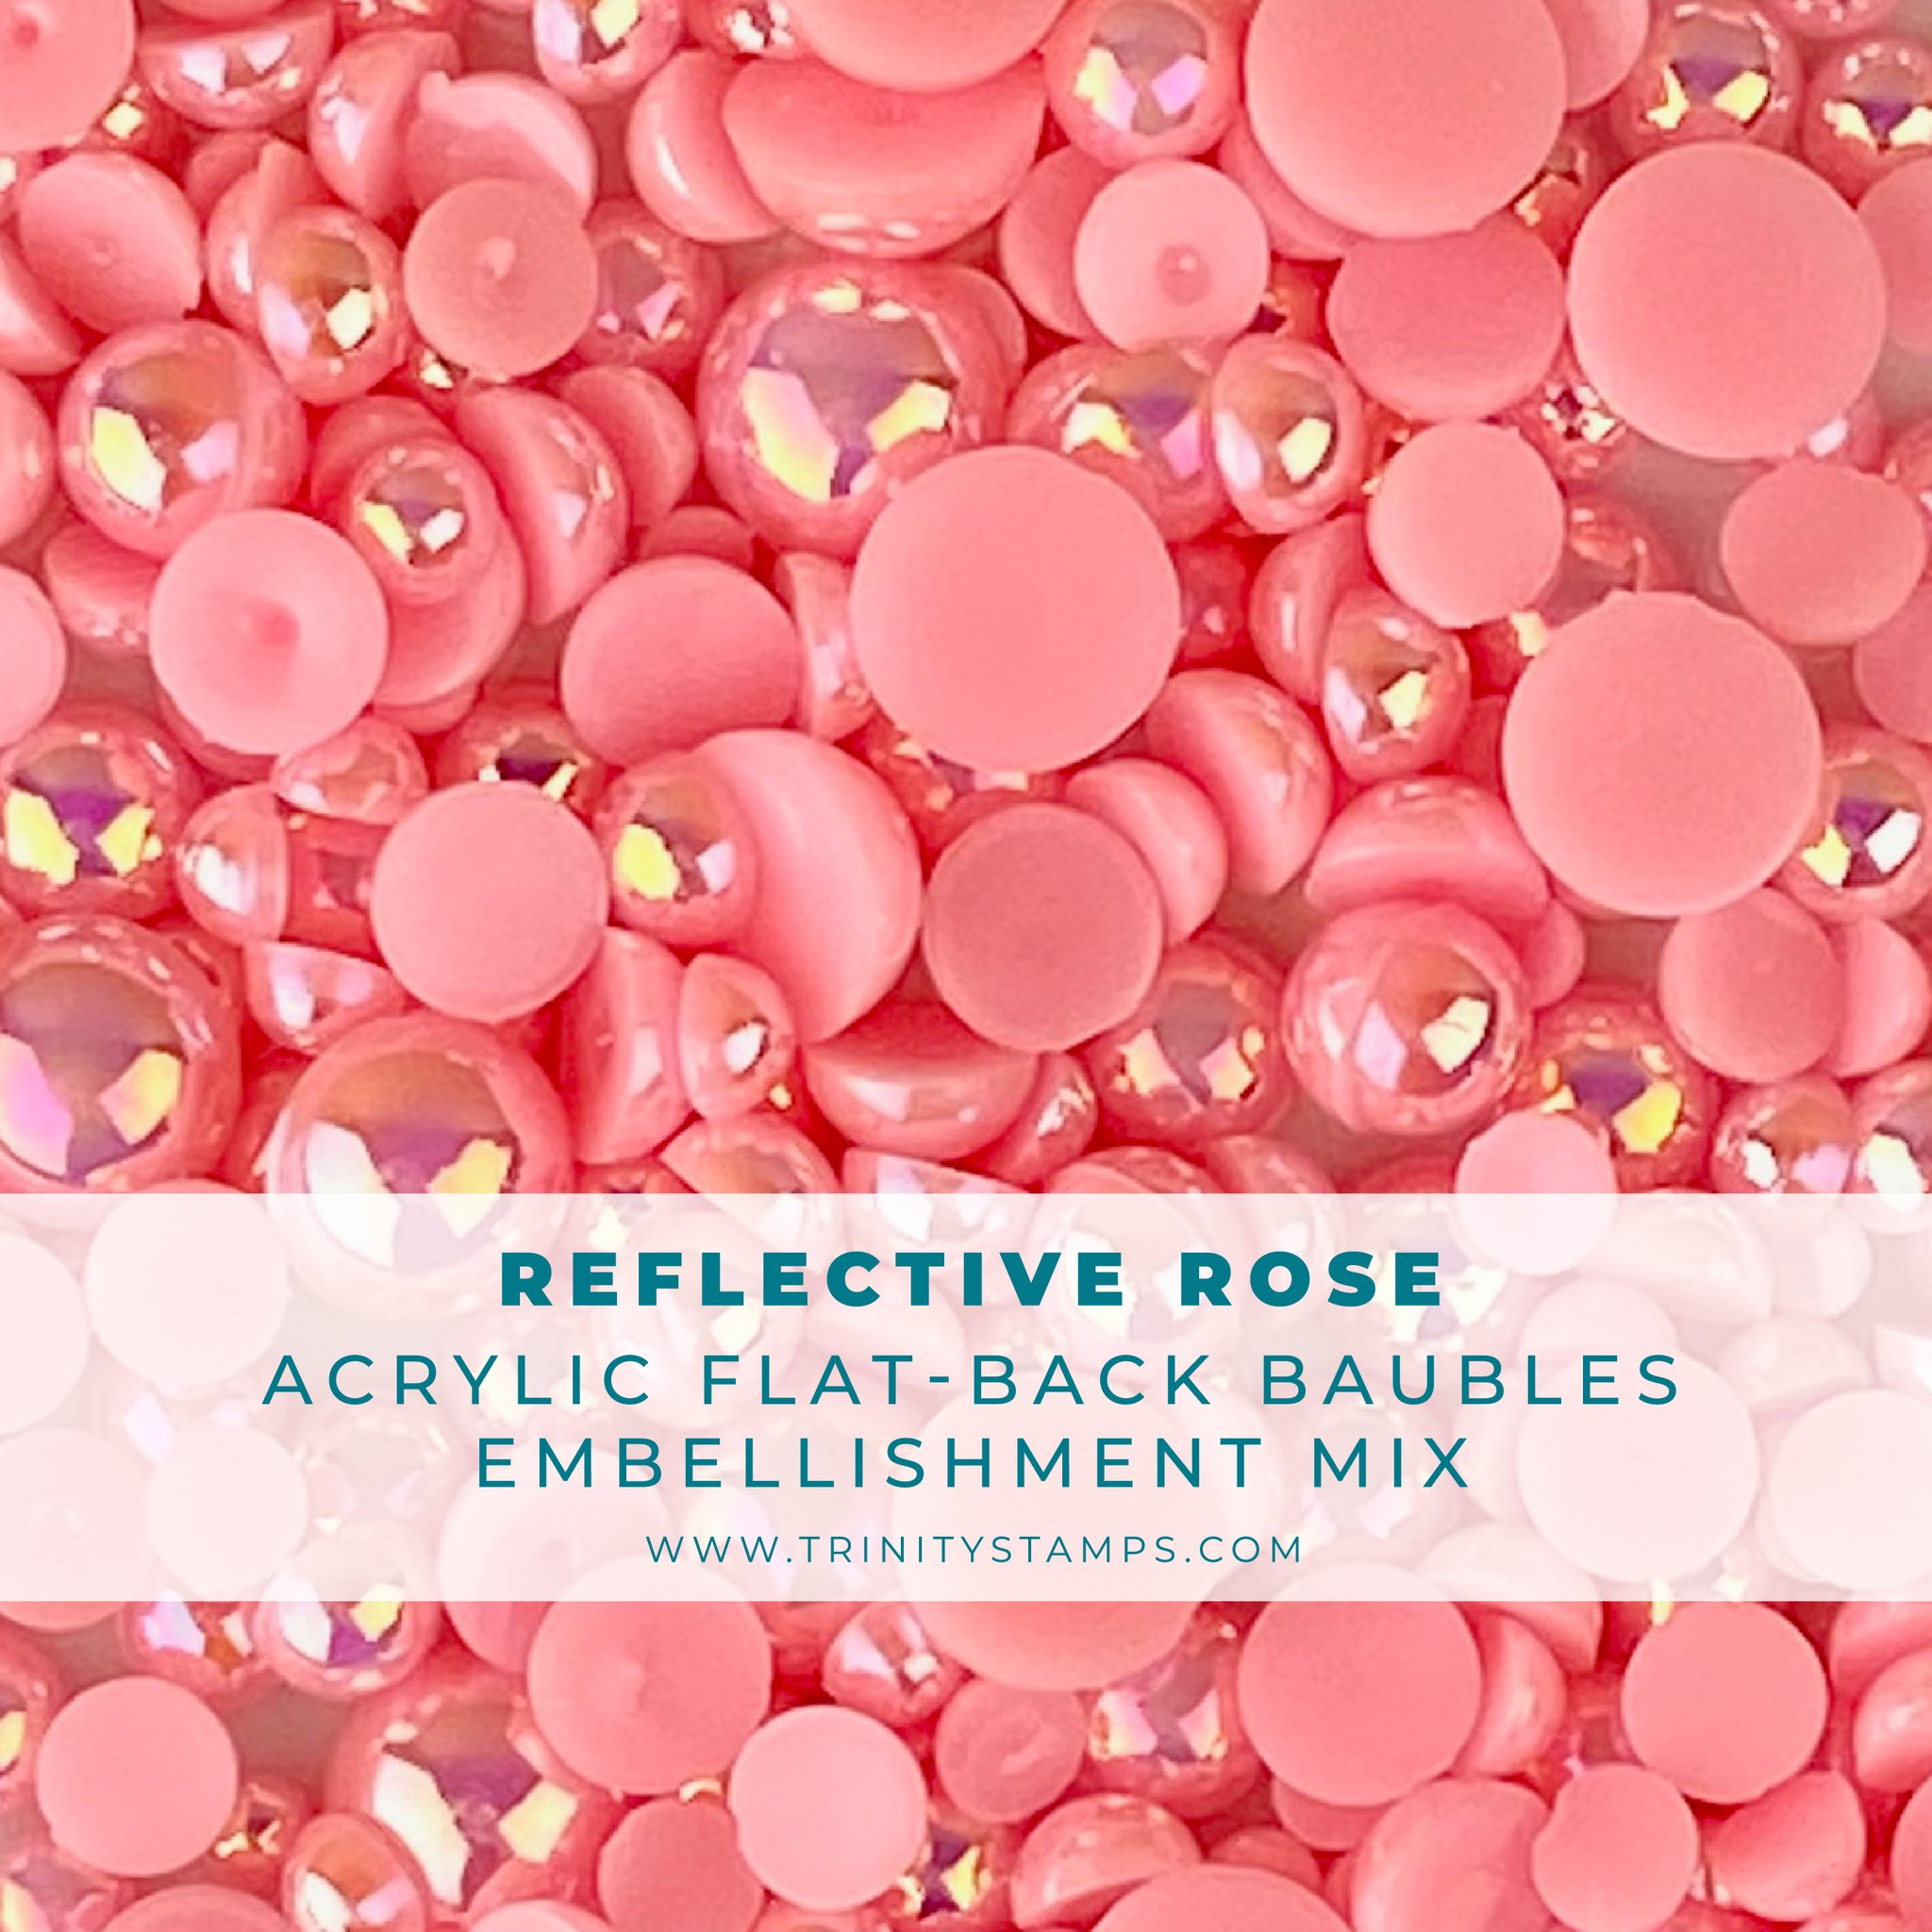 *NEW* - Trinity Stamps - Reflective Rose Baubles Embellishment Mix